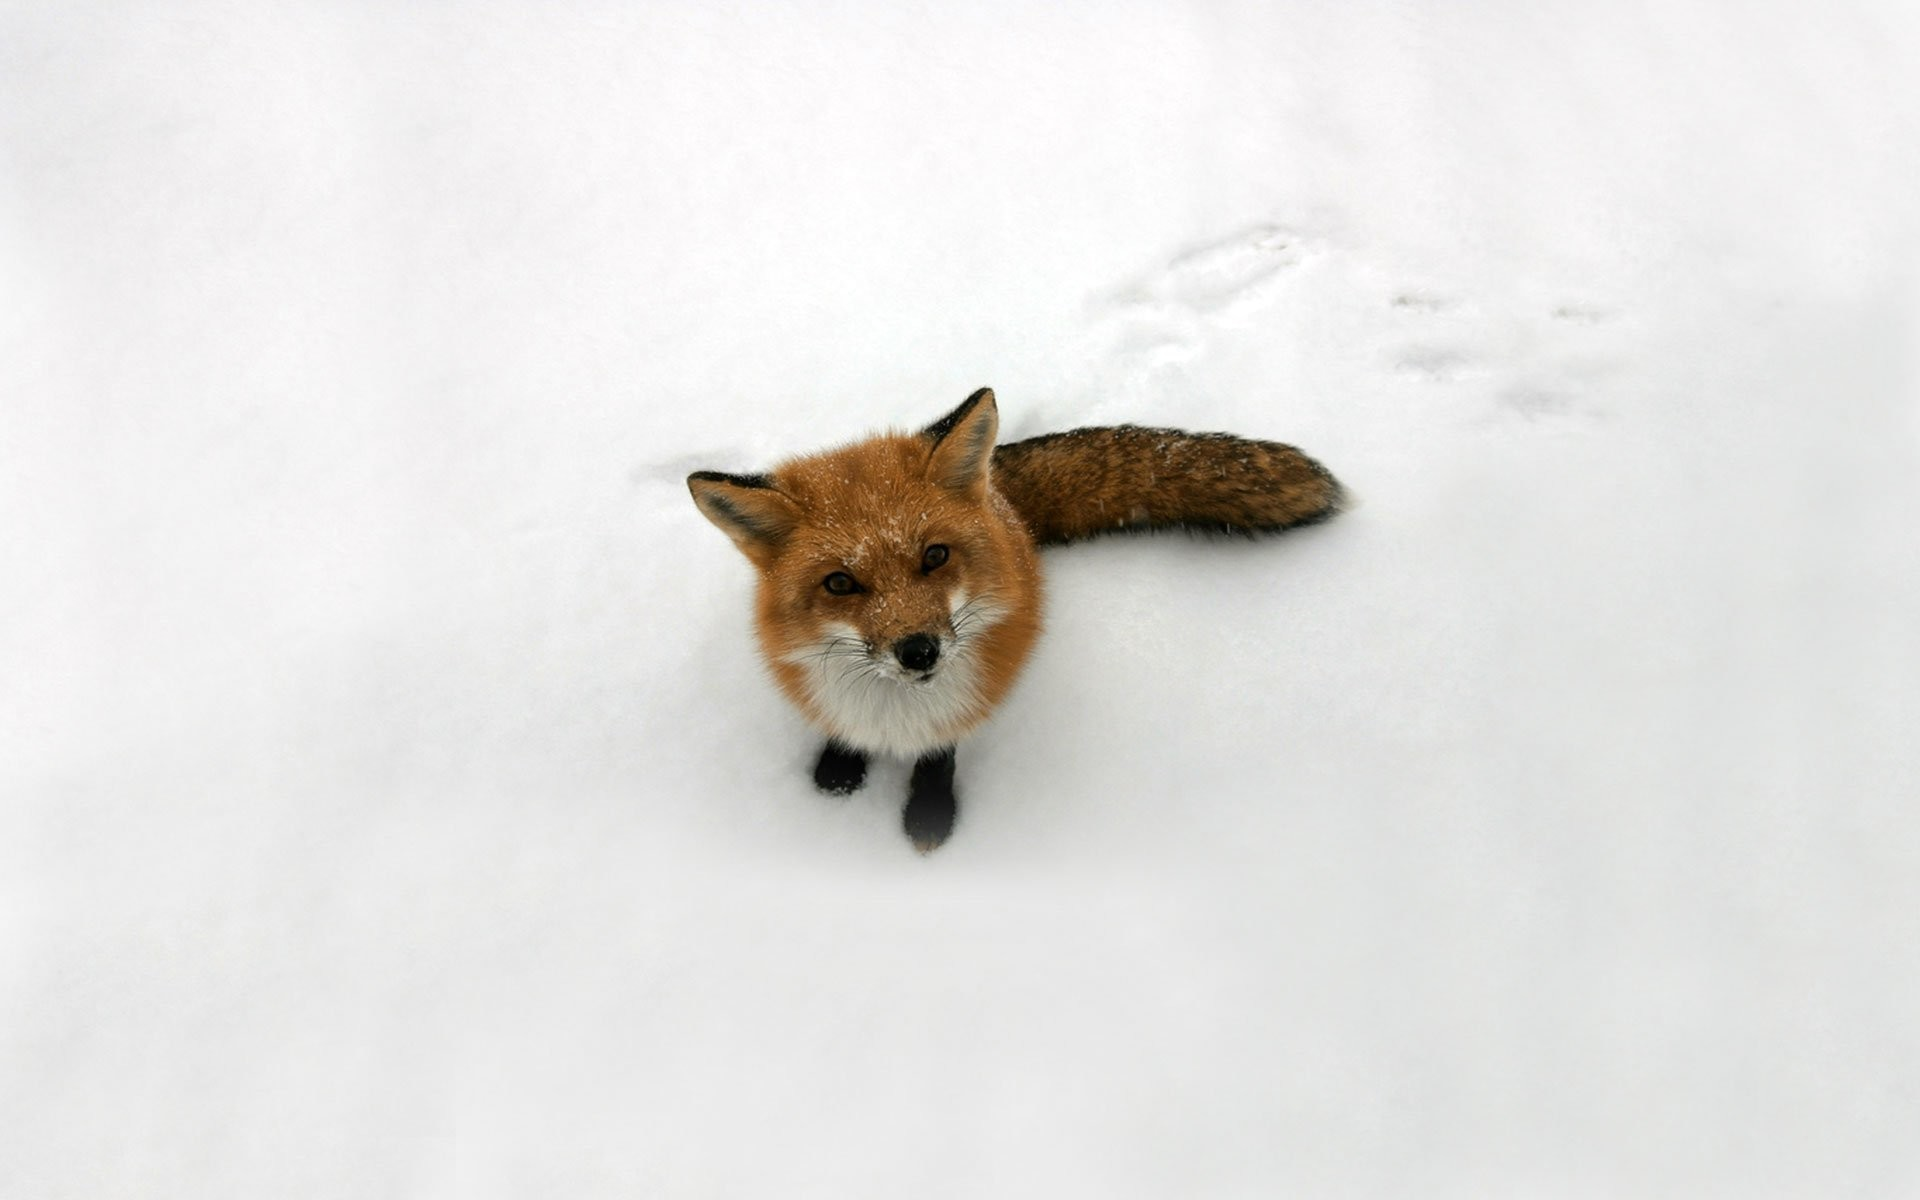 Fox Snow. SHARE. TAGS: Backgrounds Background Cute Winter